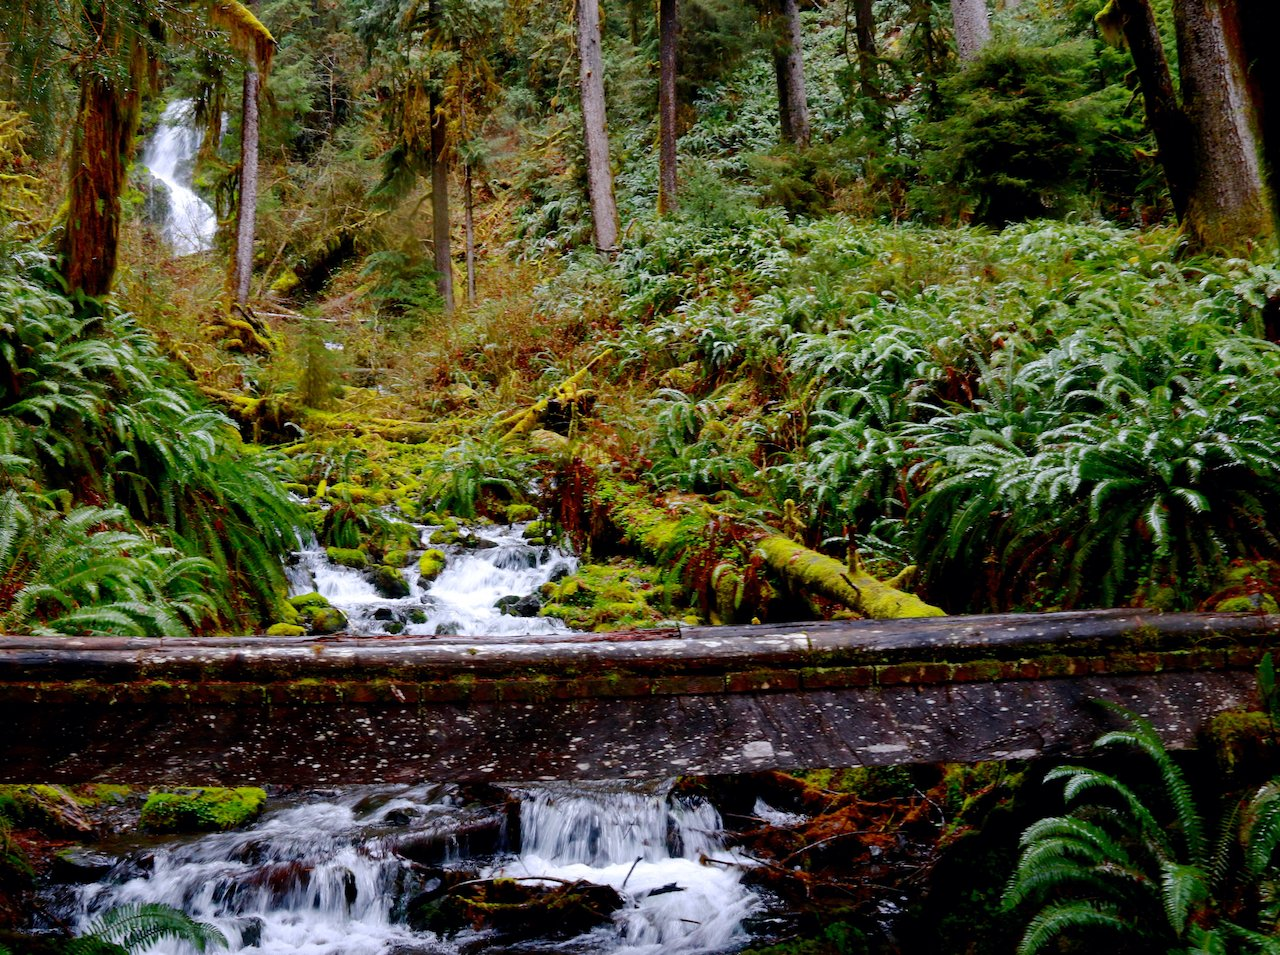 The Ultimate Guide to the Olympic National Park's Hoh Rainforest